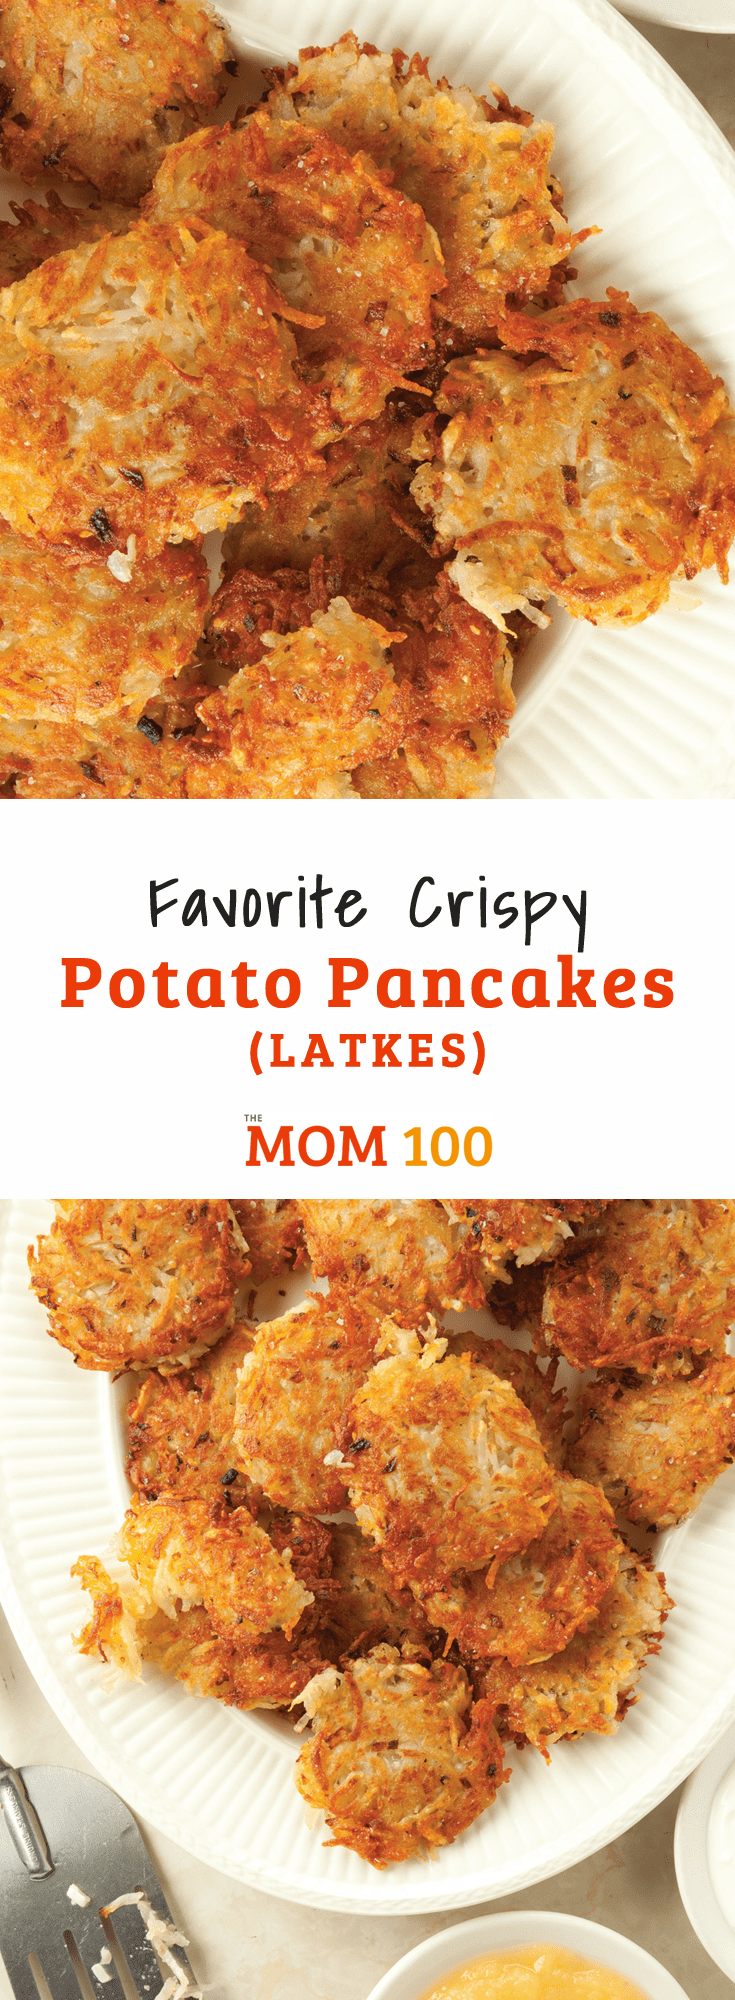 Our Favorite Crispy Potato Pancakes (Latkes): It\'s not Hanukah without a batch or two of these delicious potato pancakes (but they are amazing all year round as well!)